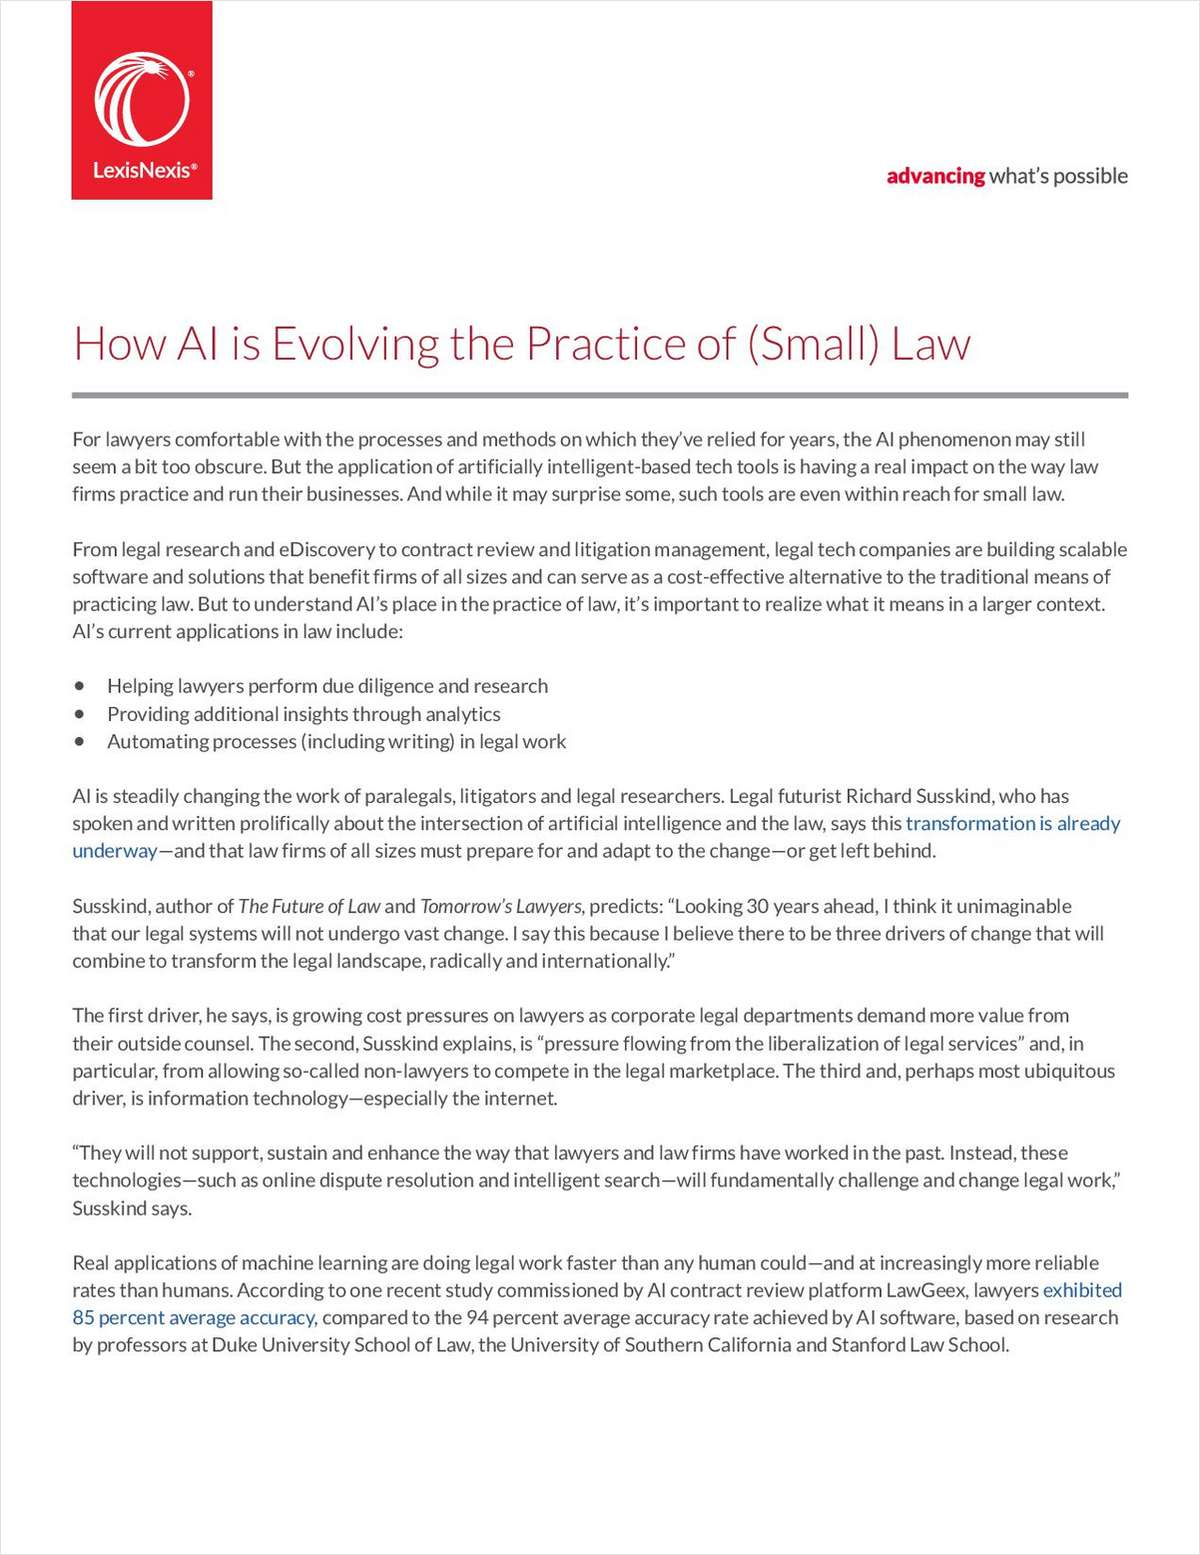 How AI is Evolving the Practice of Small Law